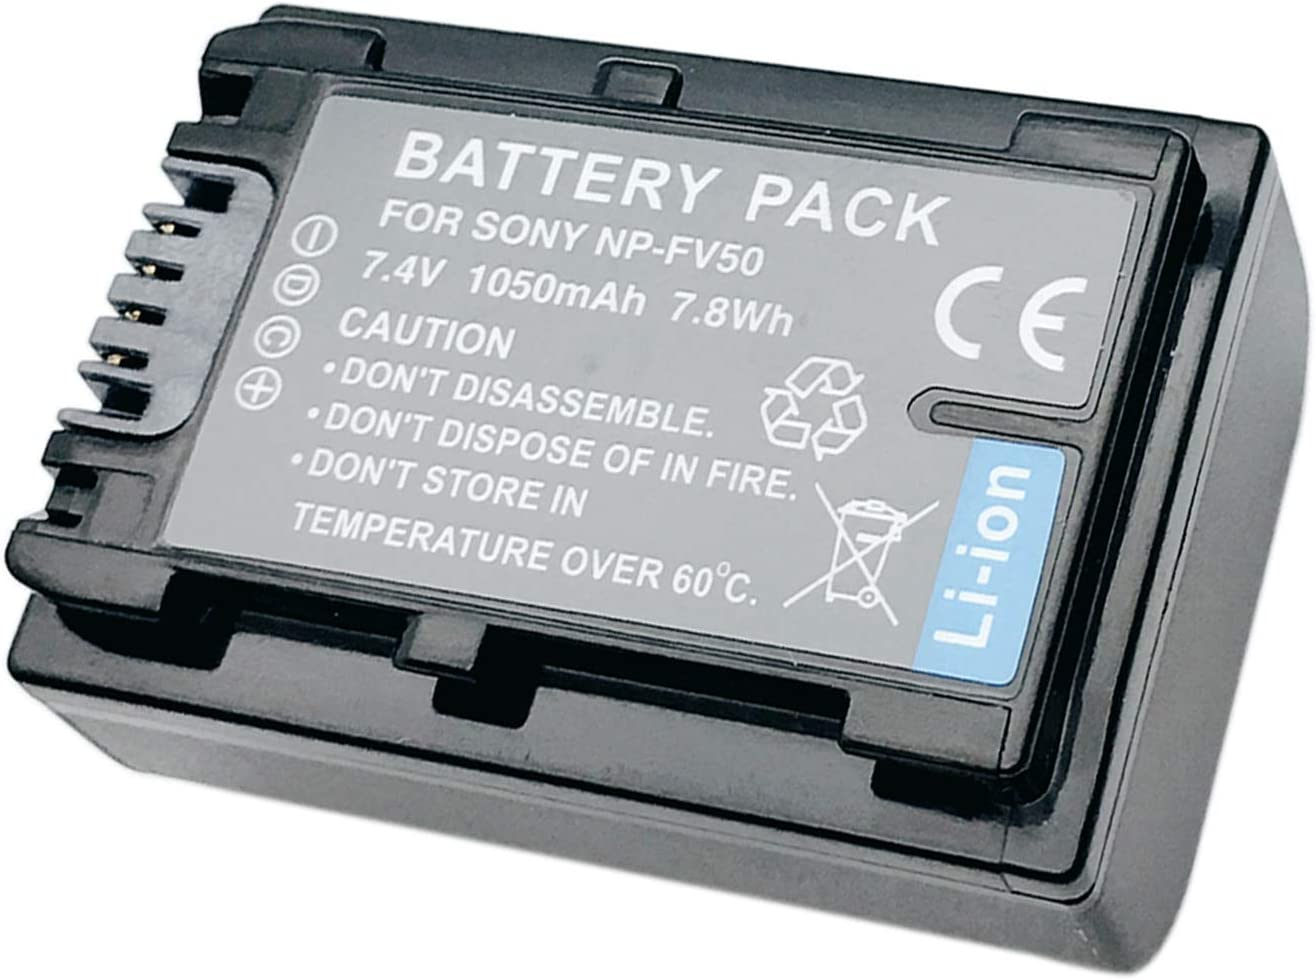 HDR-CX625E HDR-CX630VE Handycam Camcorder HDR-CX620E Battery 2 Pack for Sony HDR-CX610E